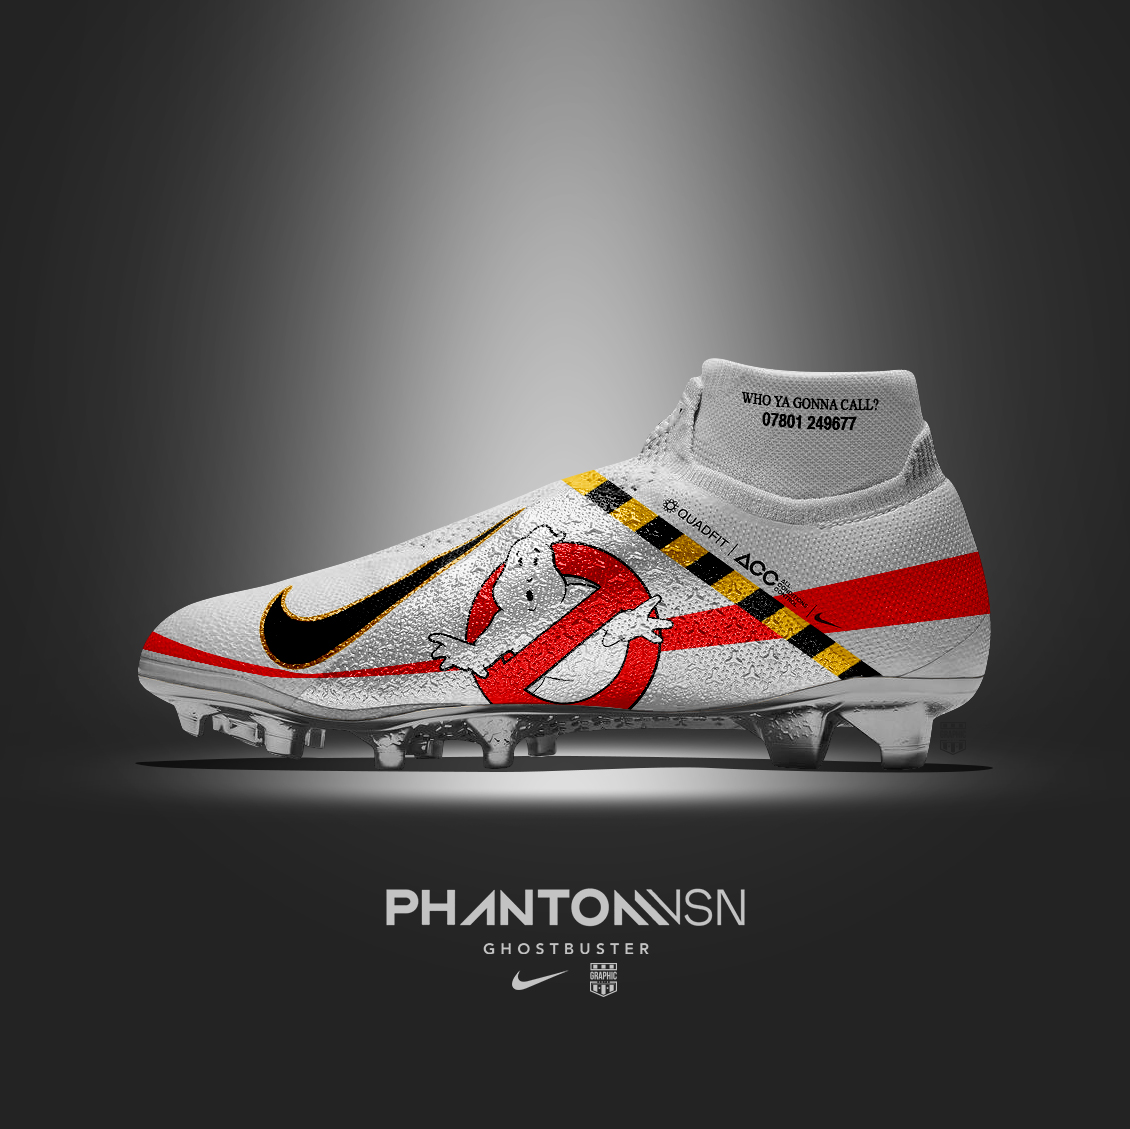 nike-phantom-vision-7eme-art-graphic-united-sos-fantomes